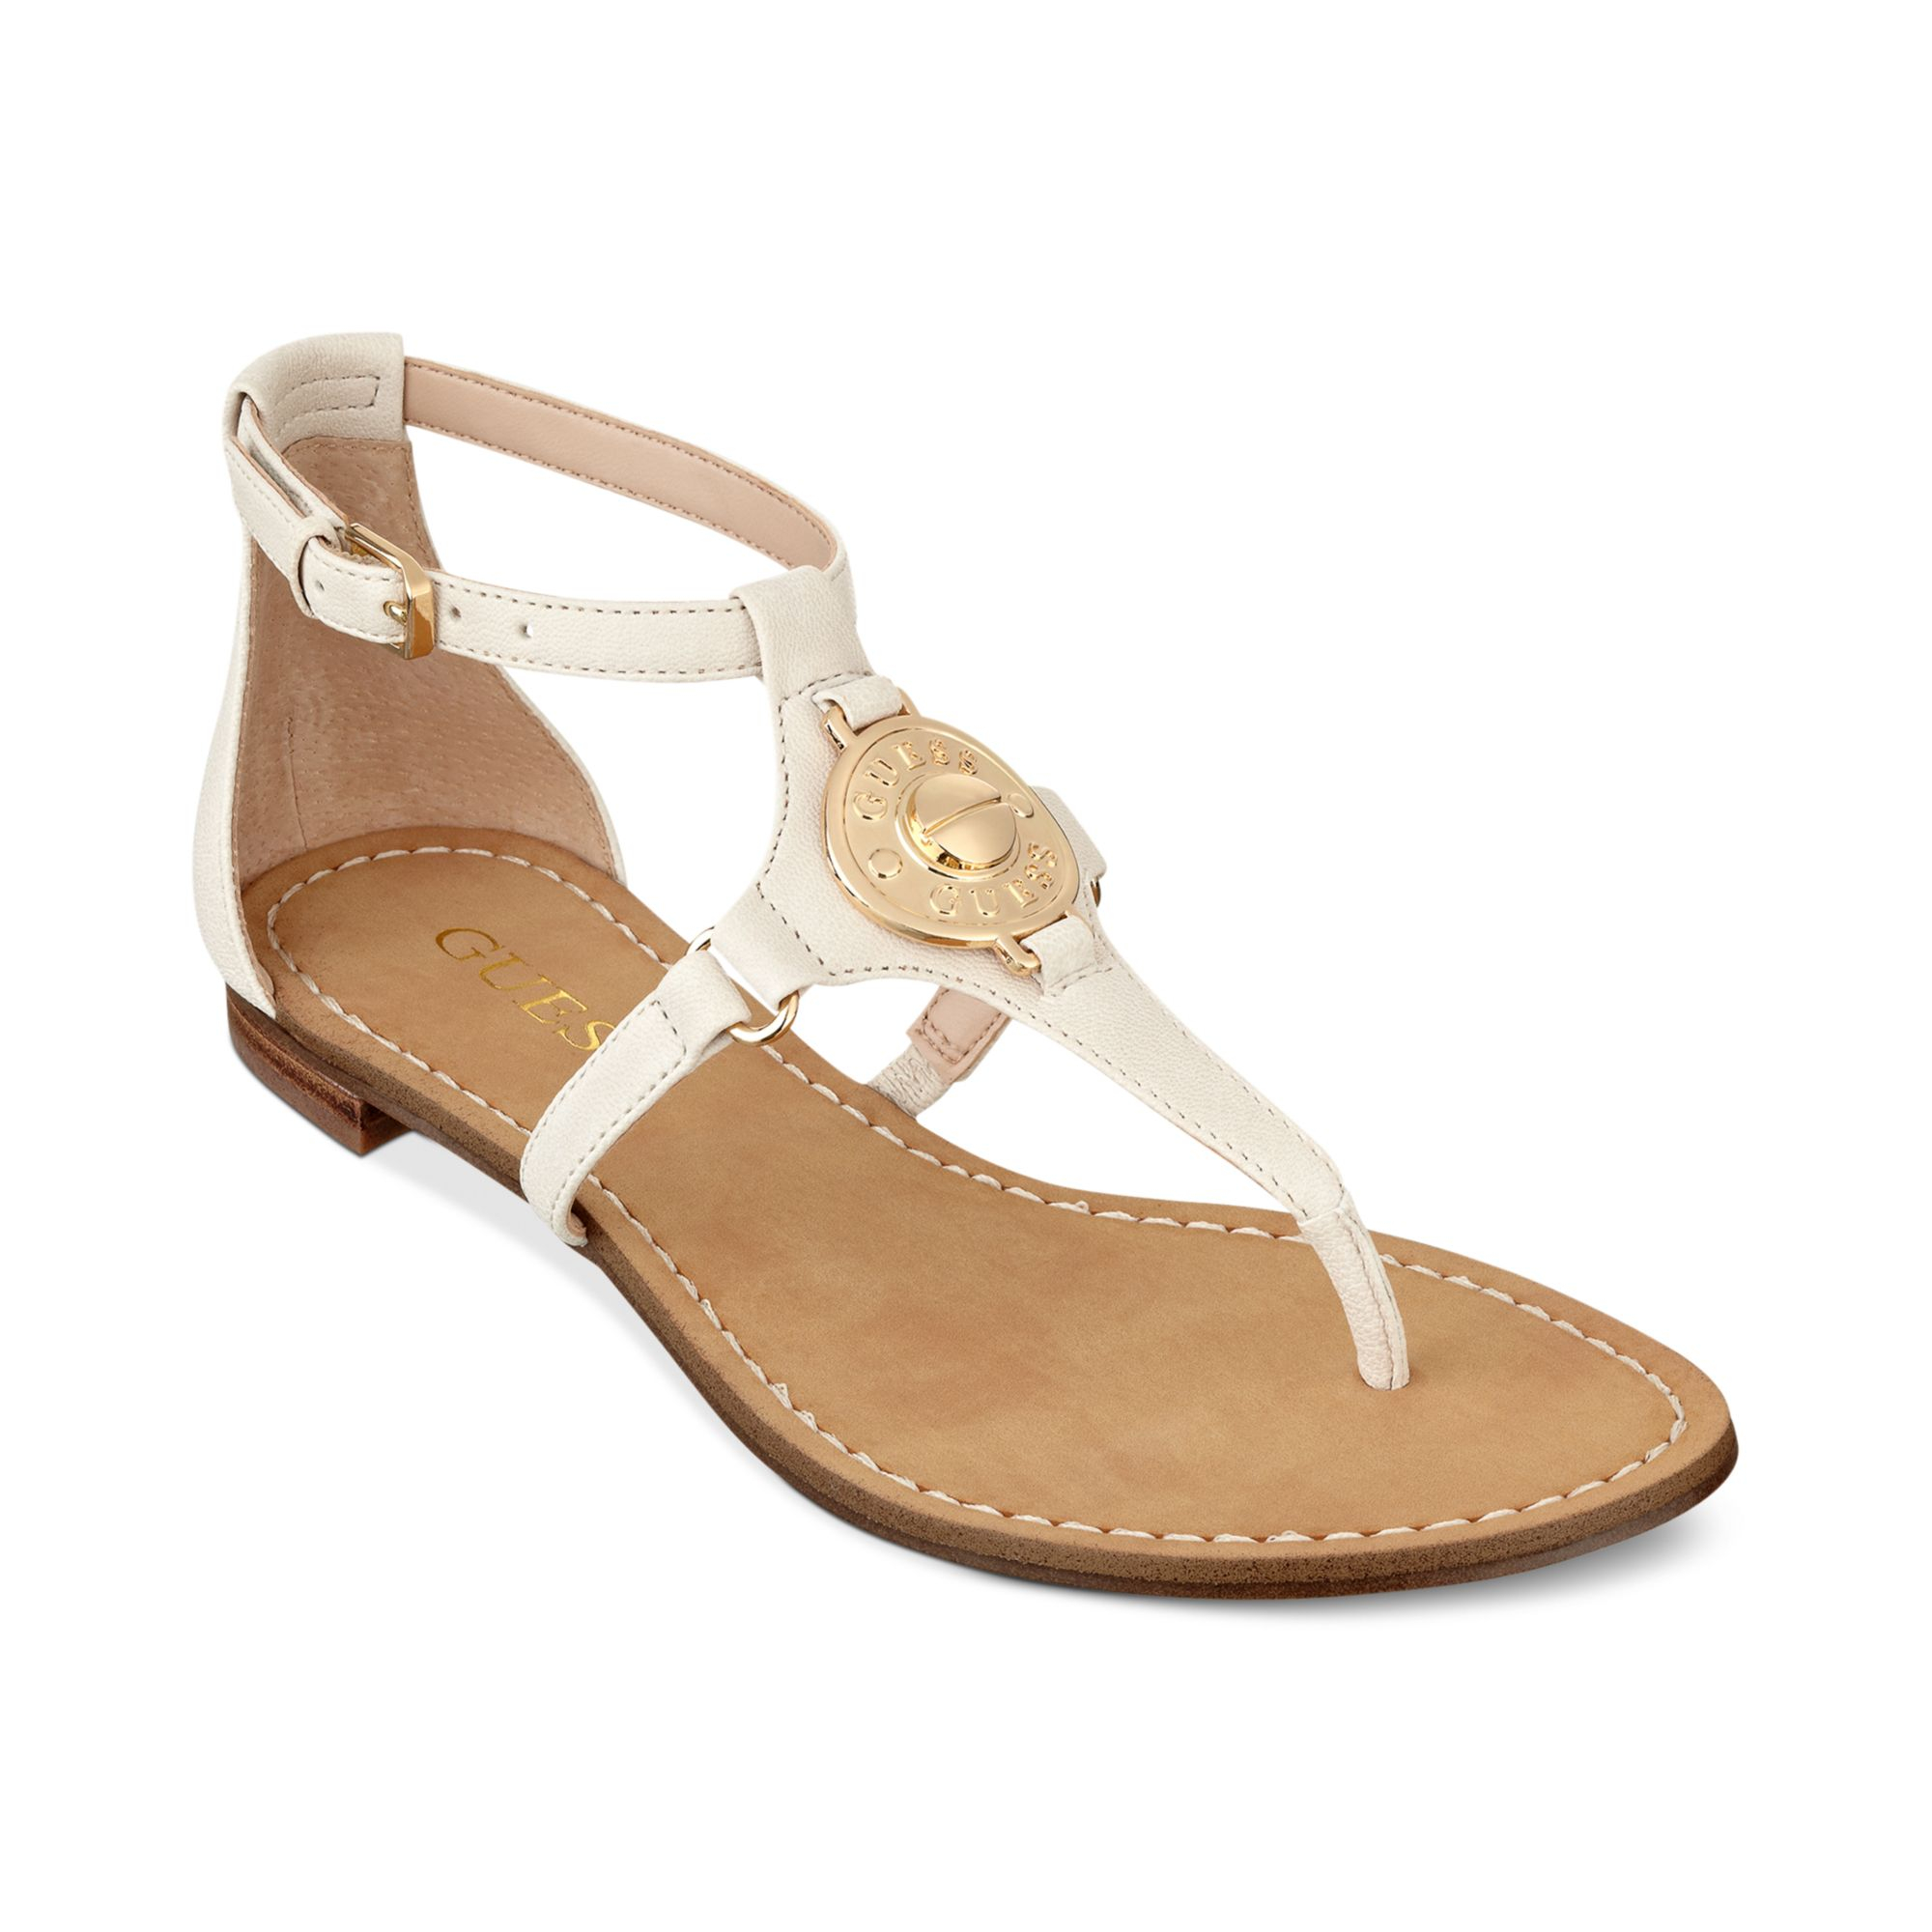 Ivory Flat Shoes With Strap